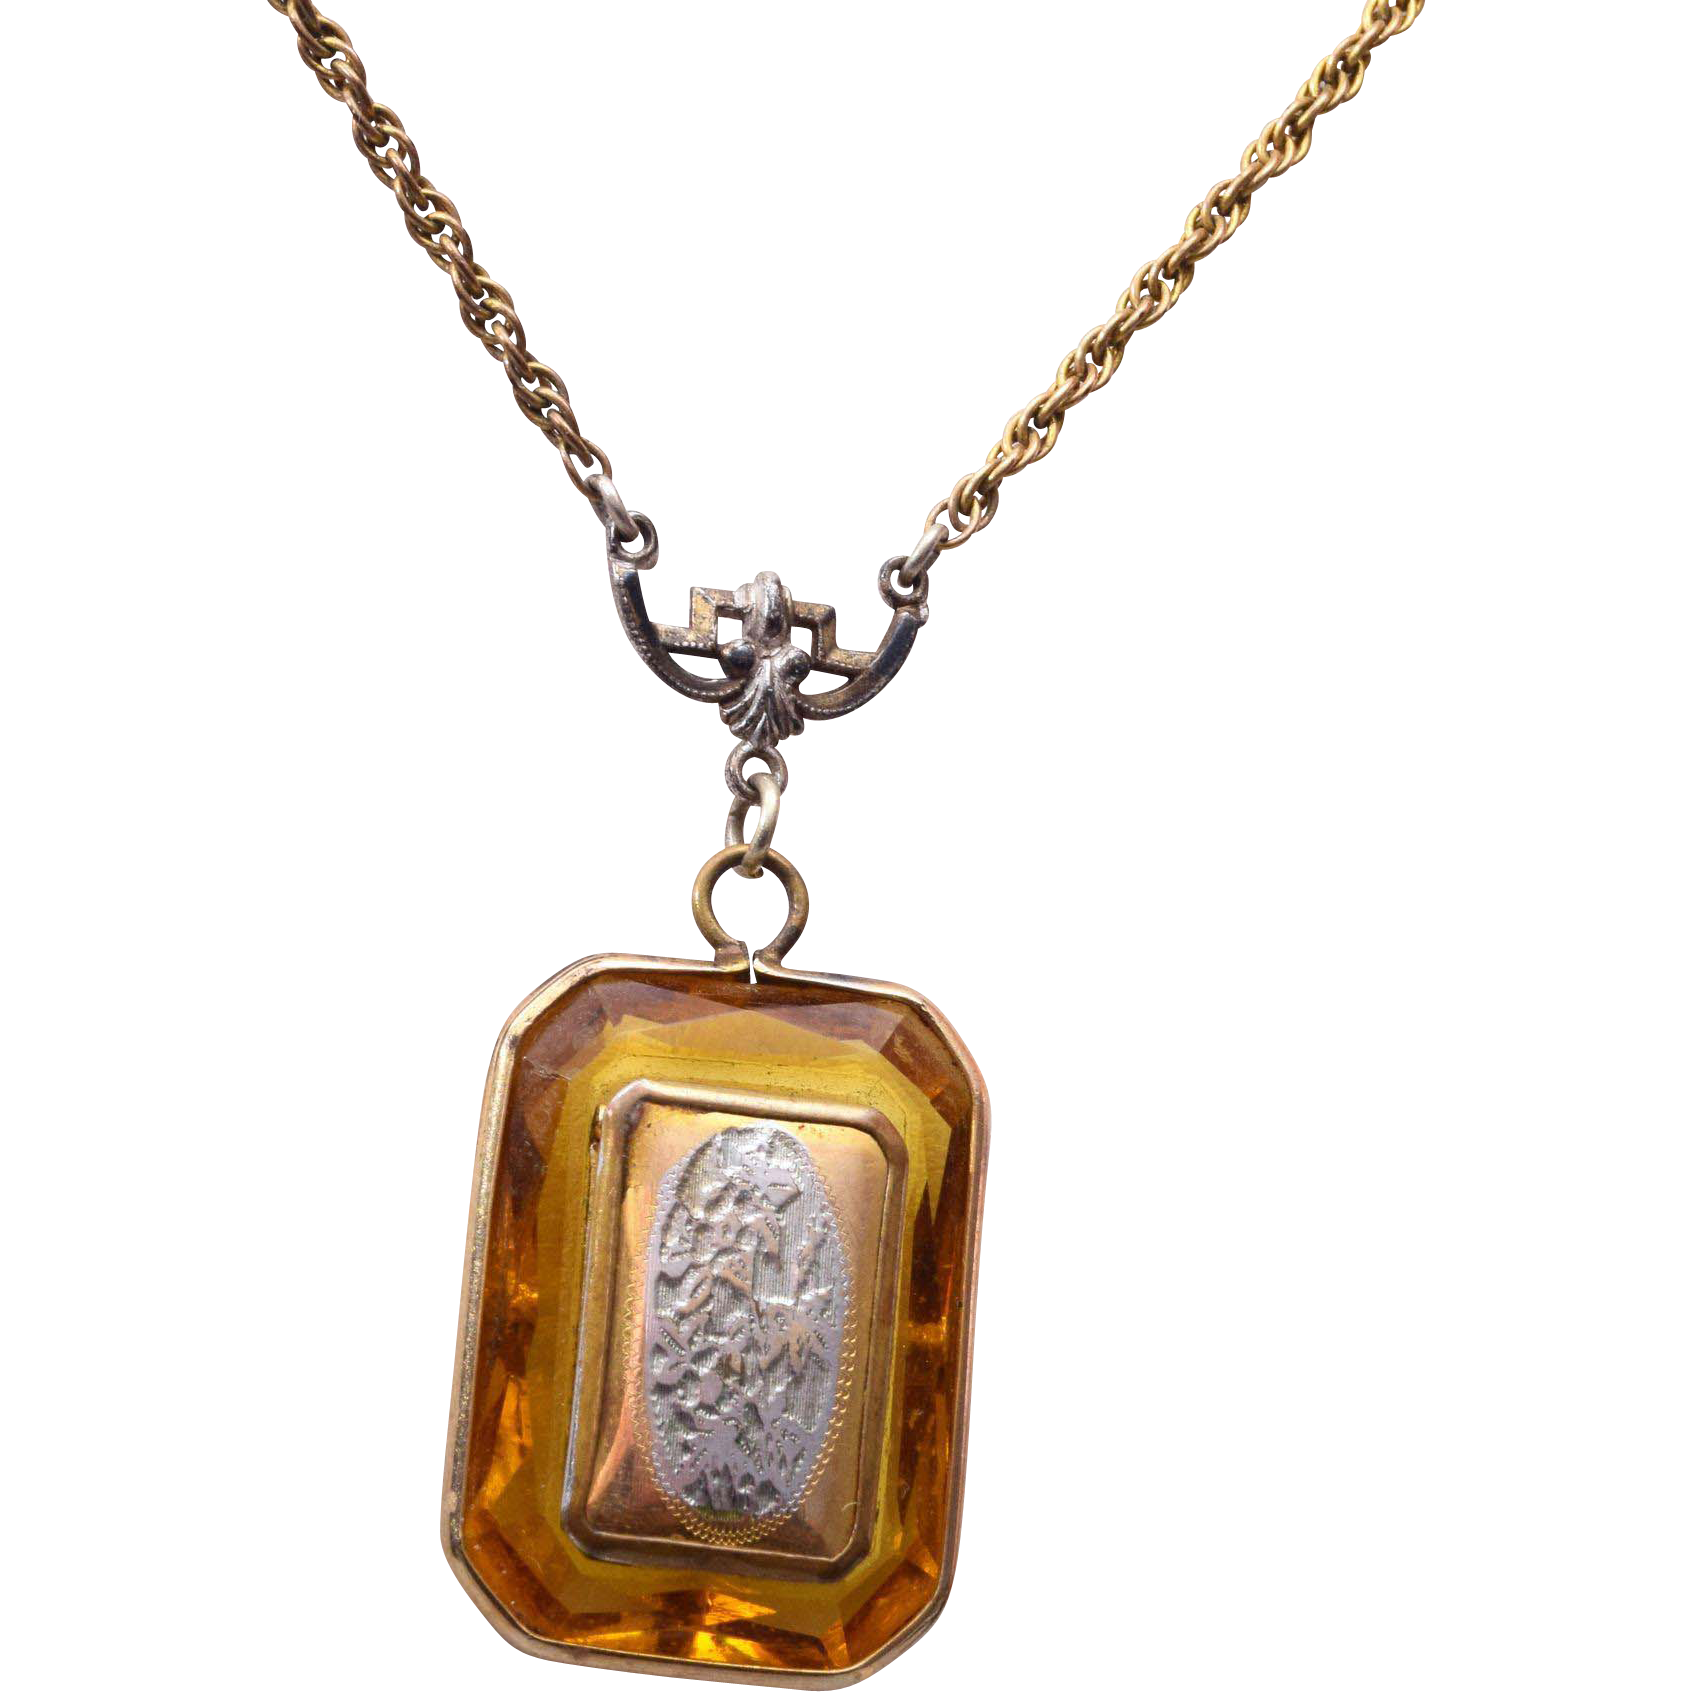 Gold Filled Locket in Topaz Faceted Crystal